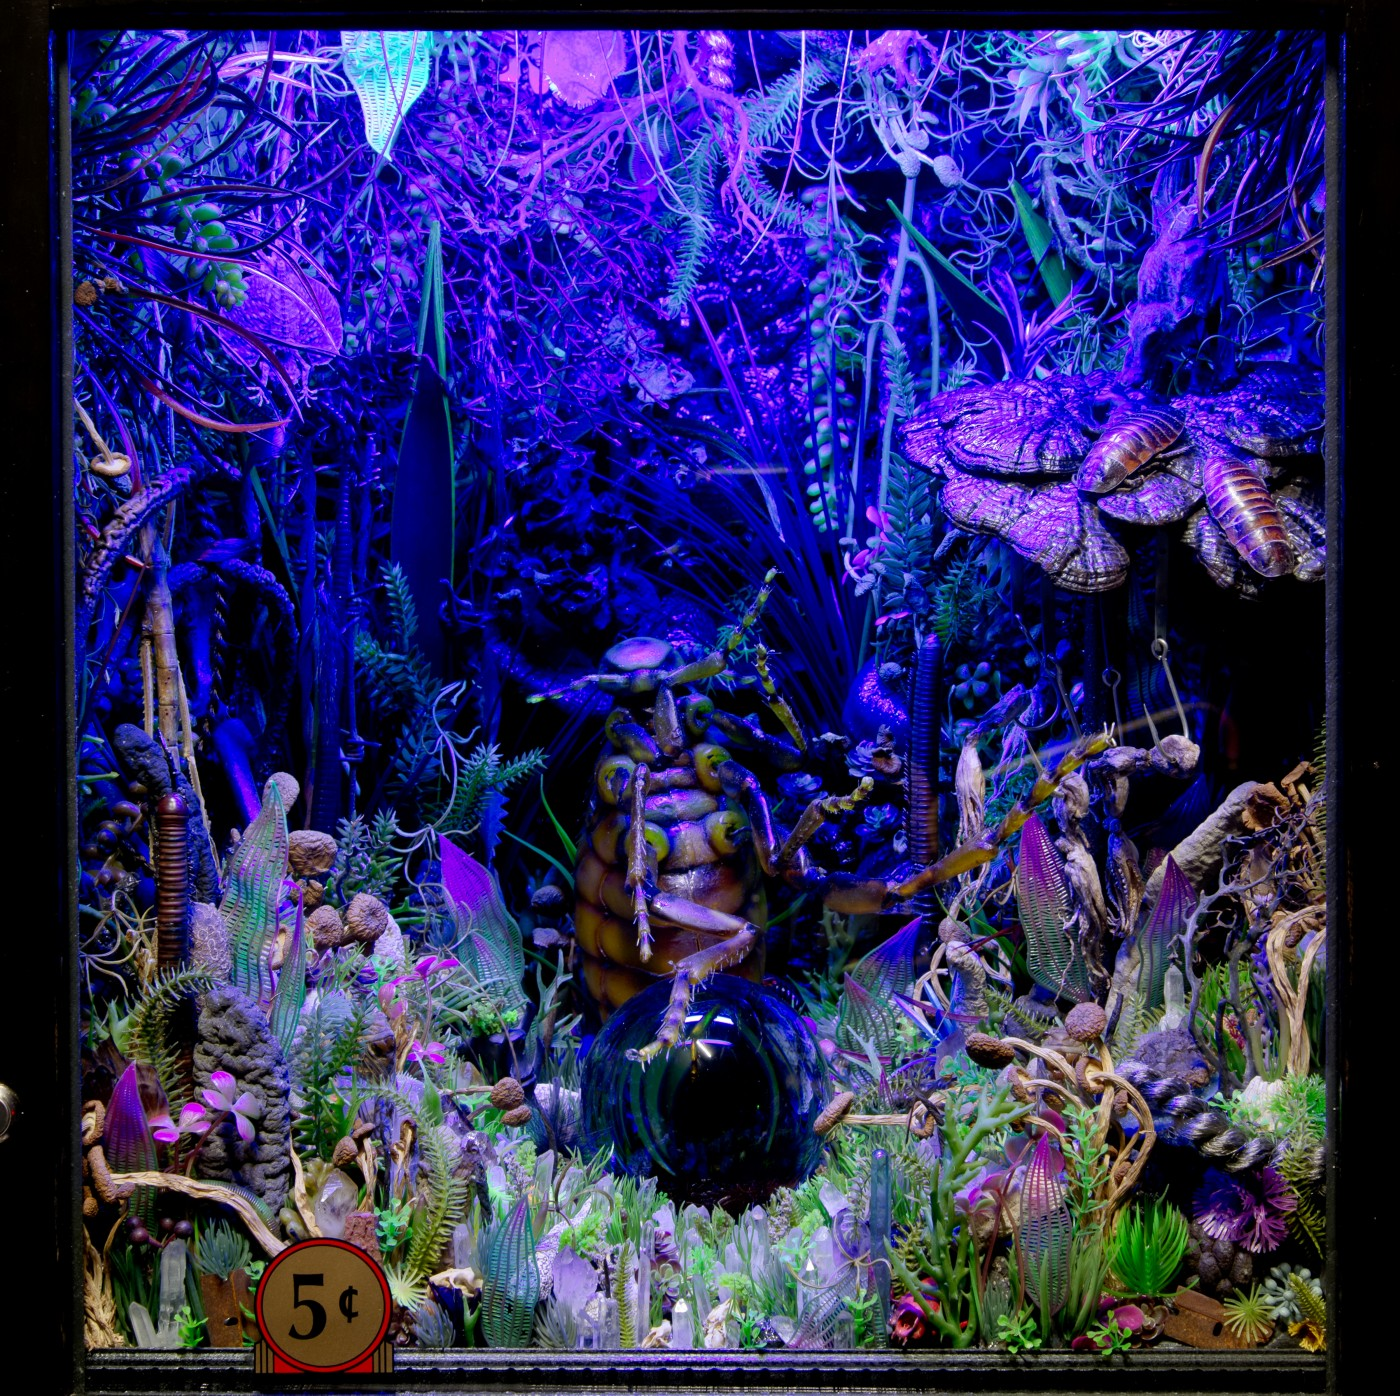 NATURE THEATER OF VIOLENT SUCCESSION  The Plaguewielder</I>, 2015 (detail) Custom fortune teller cabinet, animatronic flea model, aluminum sloping plinth, blacklights, crystal ball and rotating stand, custom fortune cards, plastic flora, dried organic flora, assorted crystals, animal and marine invertebrate matter, taxonomic specimens, assorted dried fungi, fish hooks, coprolites, dried mealworms, modeled acrylic windows, plastic screening 180 x 57 x 51 cm / 71 x 22.4 x 20 in   MAX HOOPER SCHNEIDER